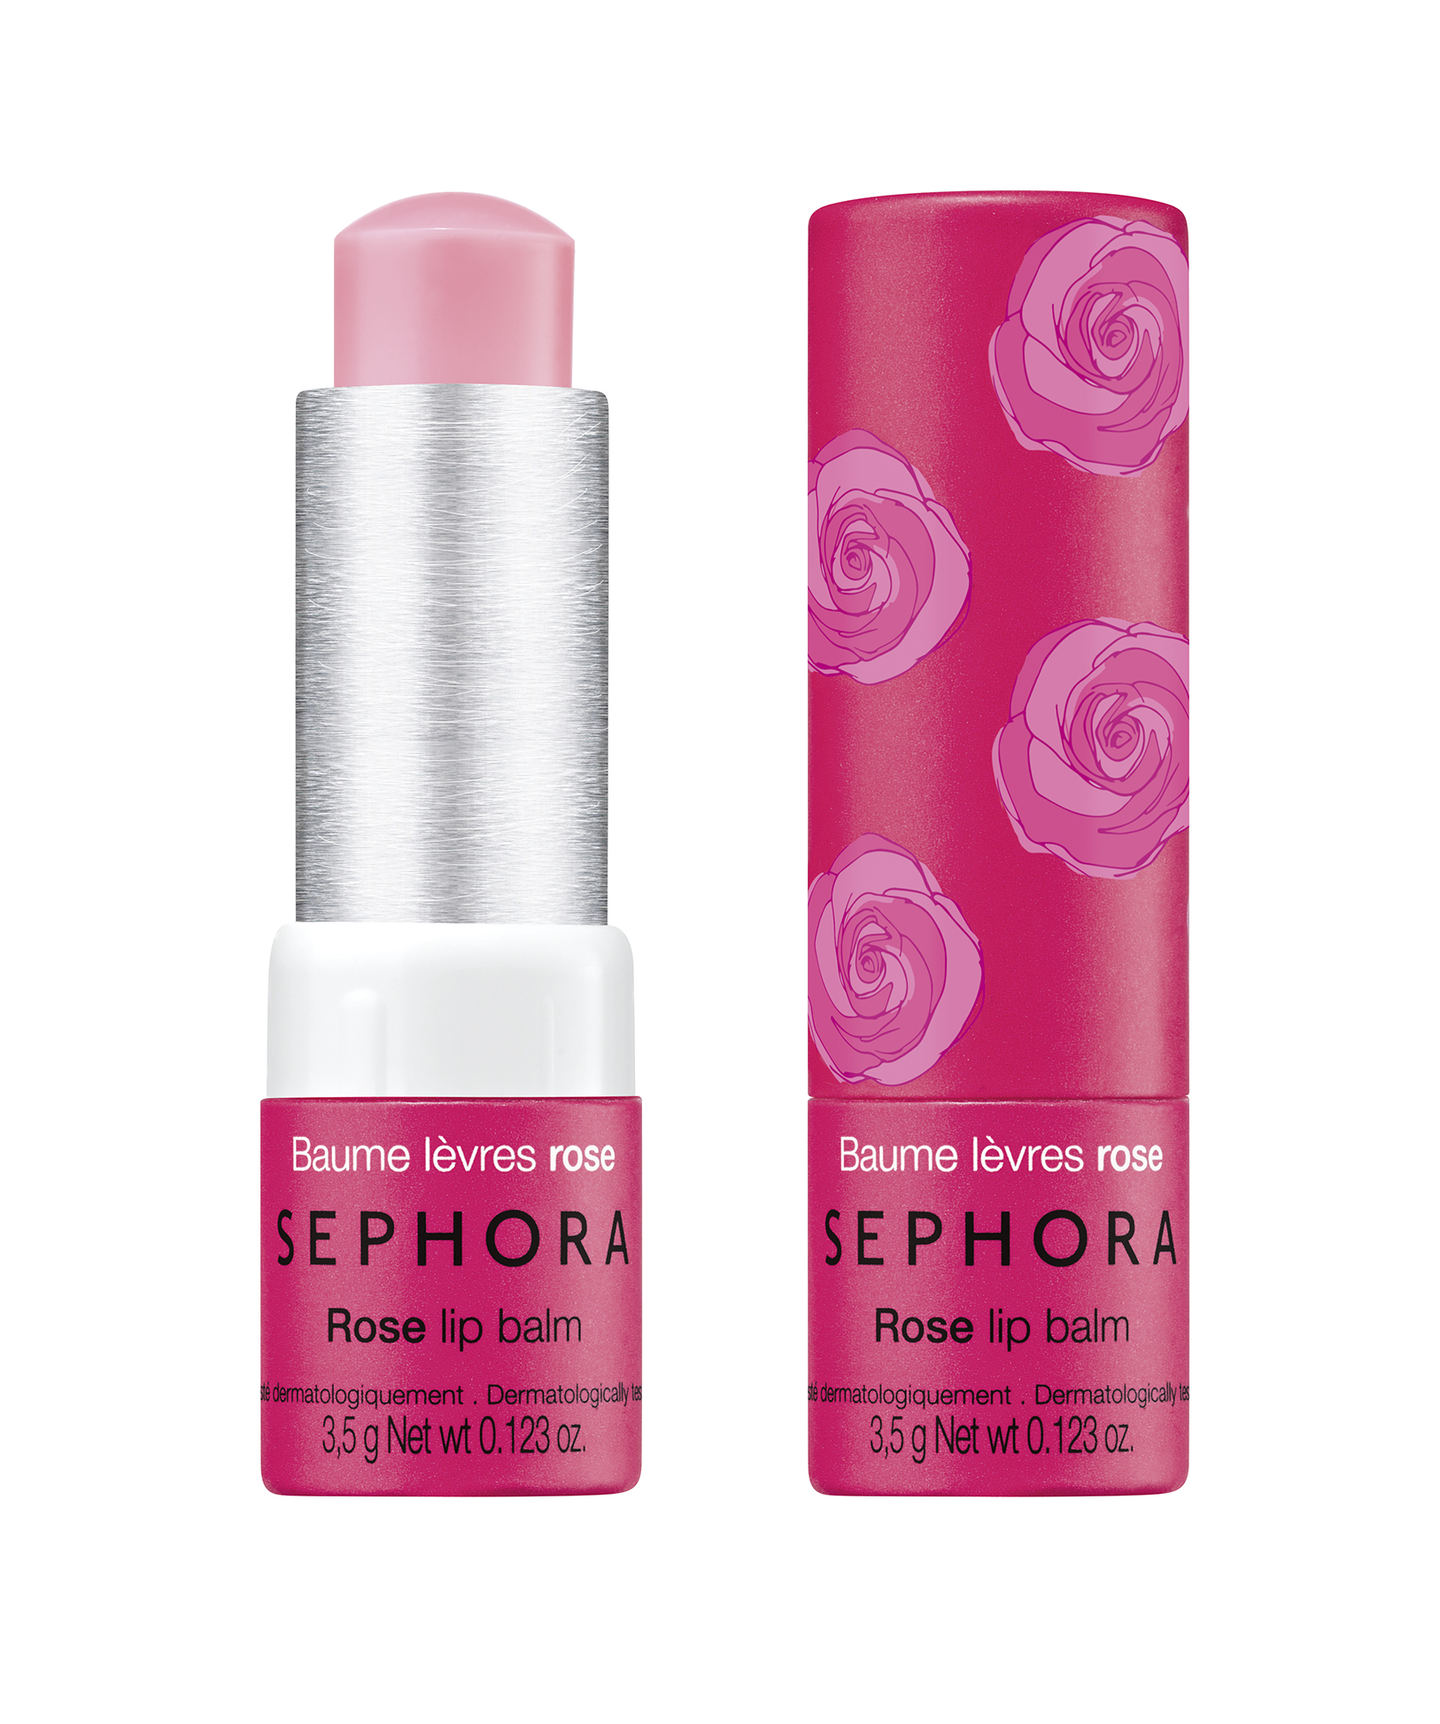 Rose lip balm | Made in Sephora